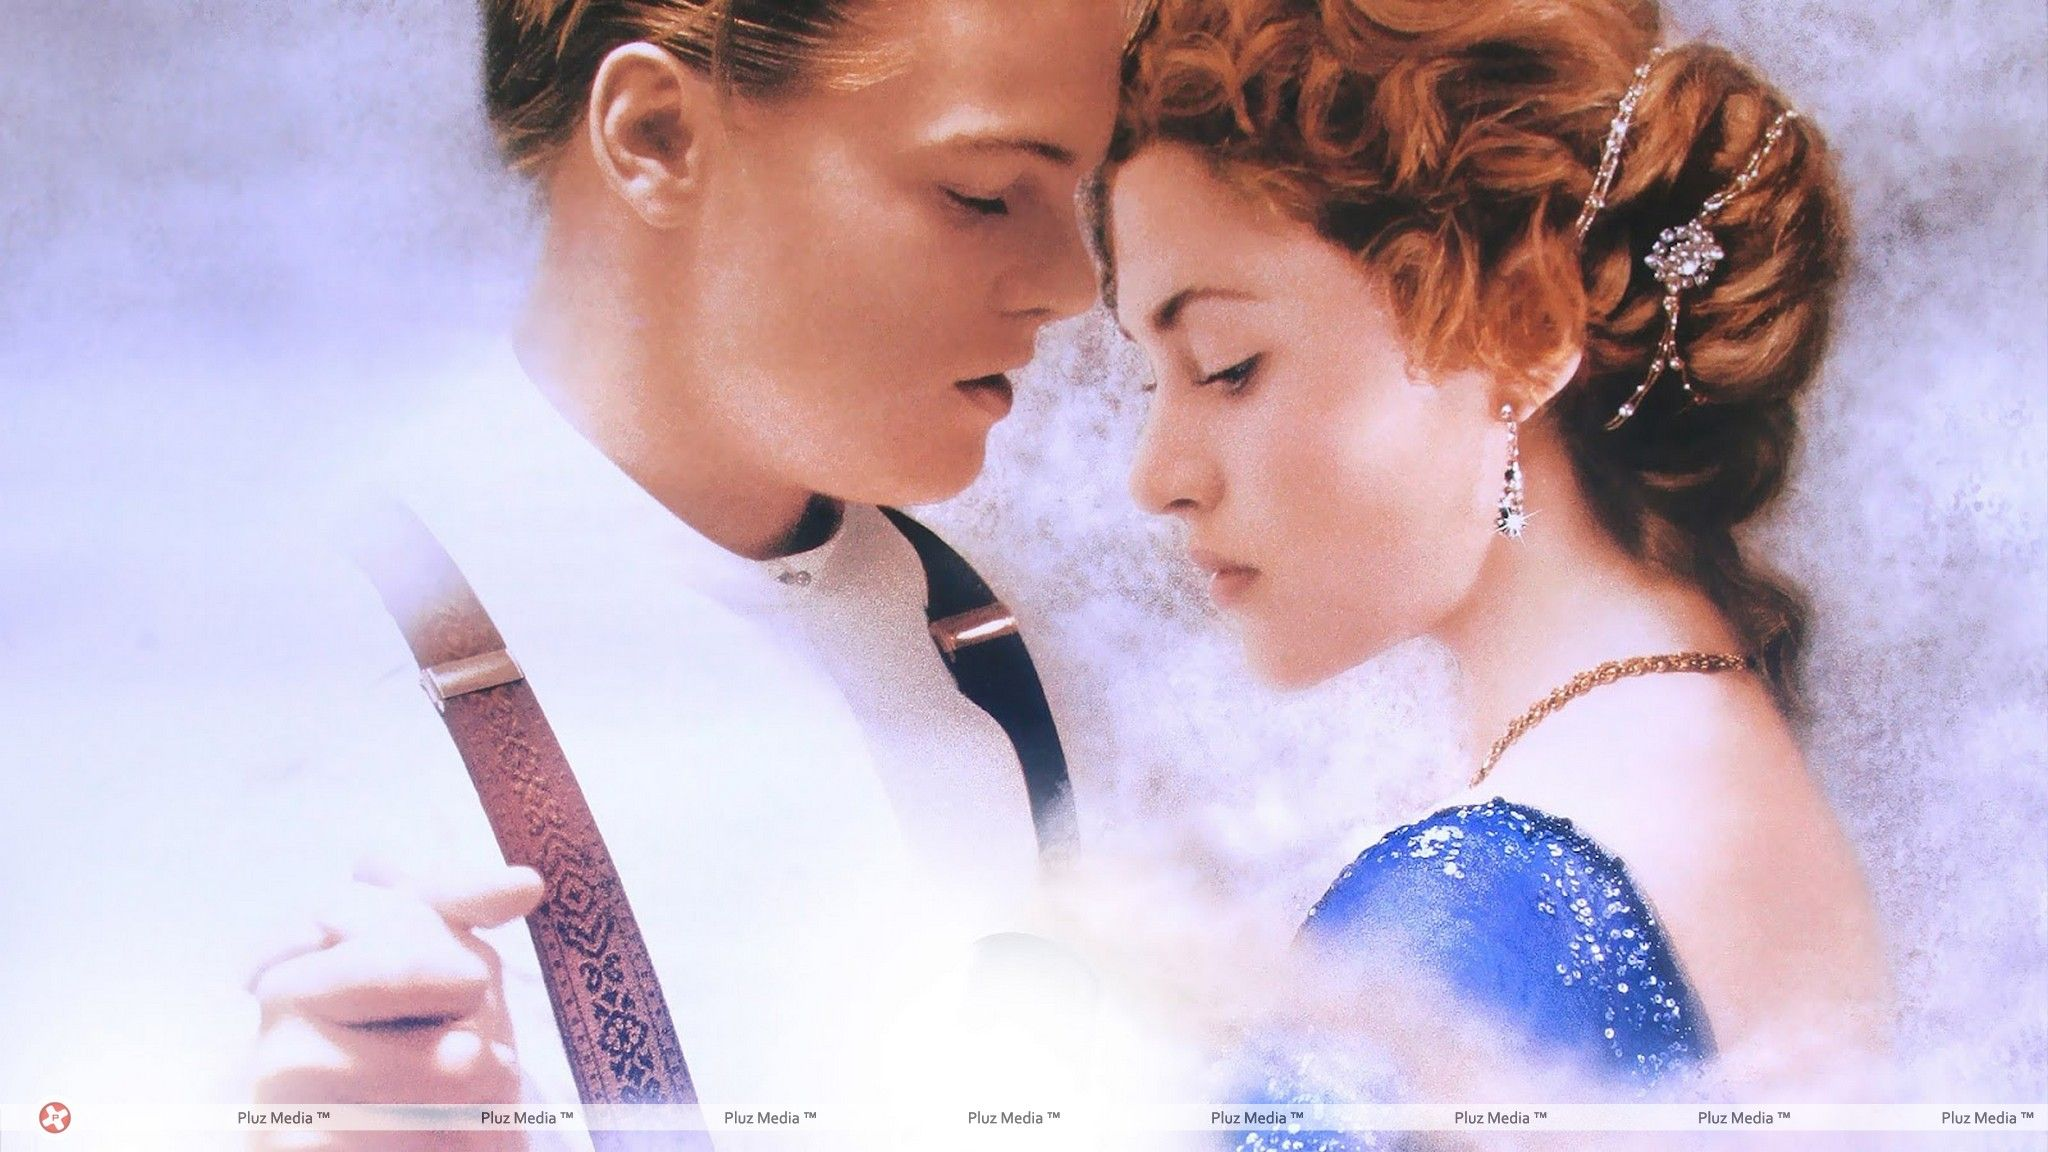 Kate Winslet And Leonardo In Titanic Movie Wallpaper Movies Hd 2048x1152